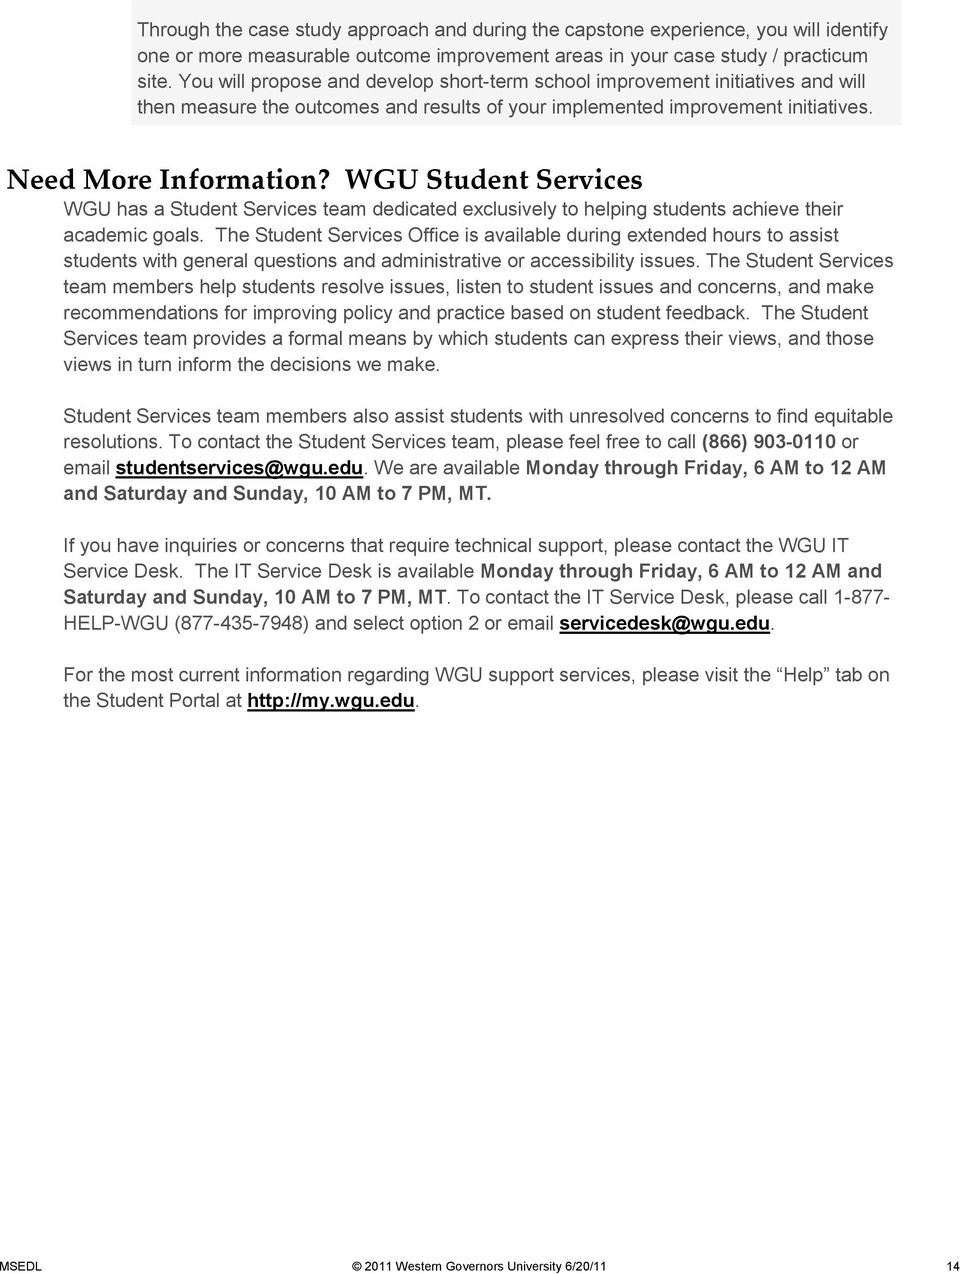 WGU Student Services WGU has a Student Services team dedicated exclusively to helping students achieve their academic goals.